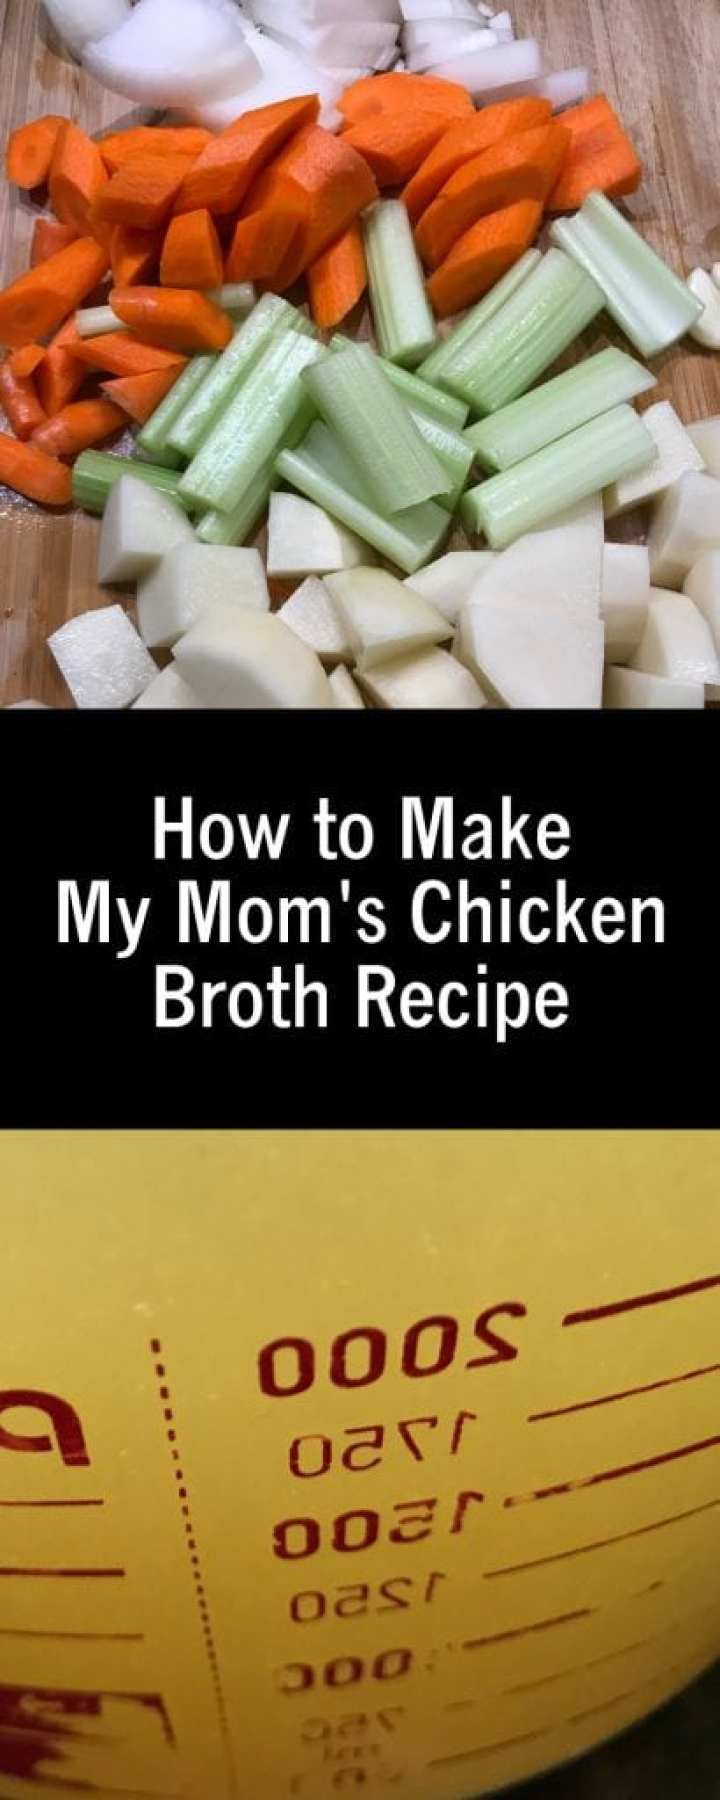 How to Make My Mom's Chicken Broth Recipe